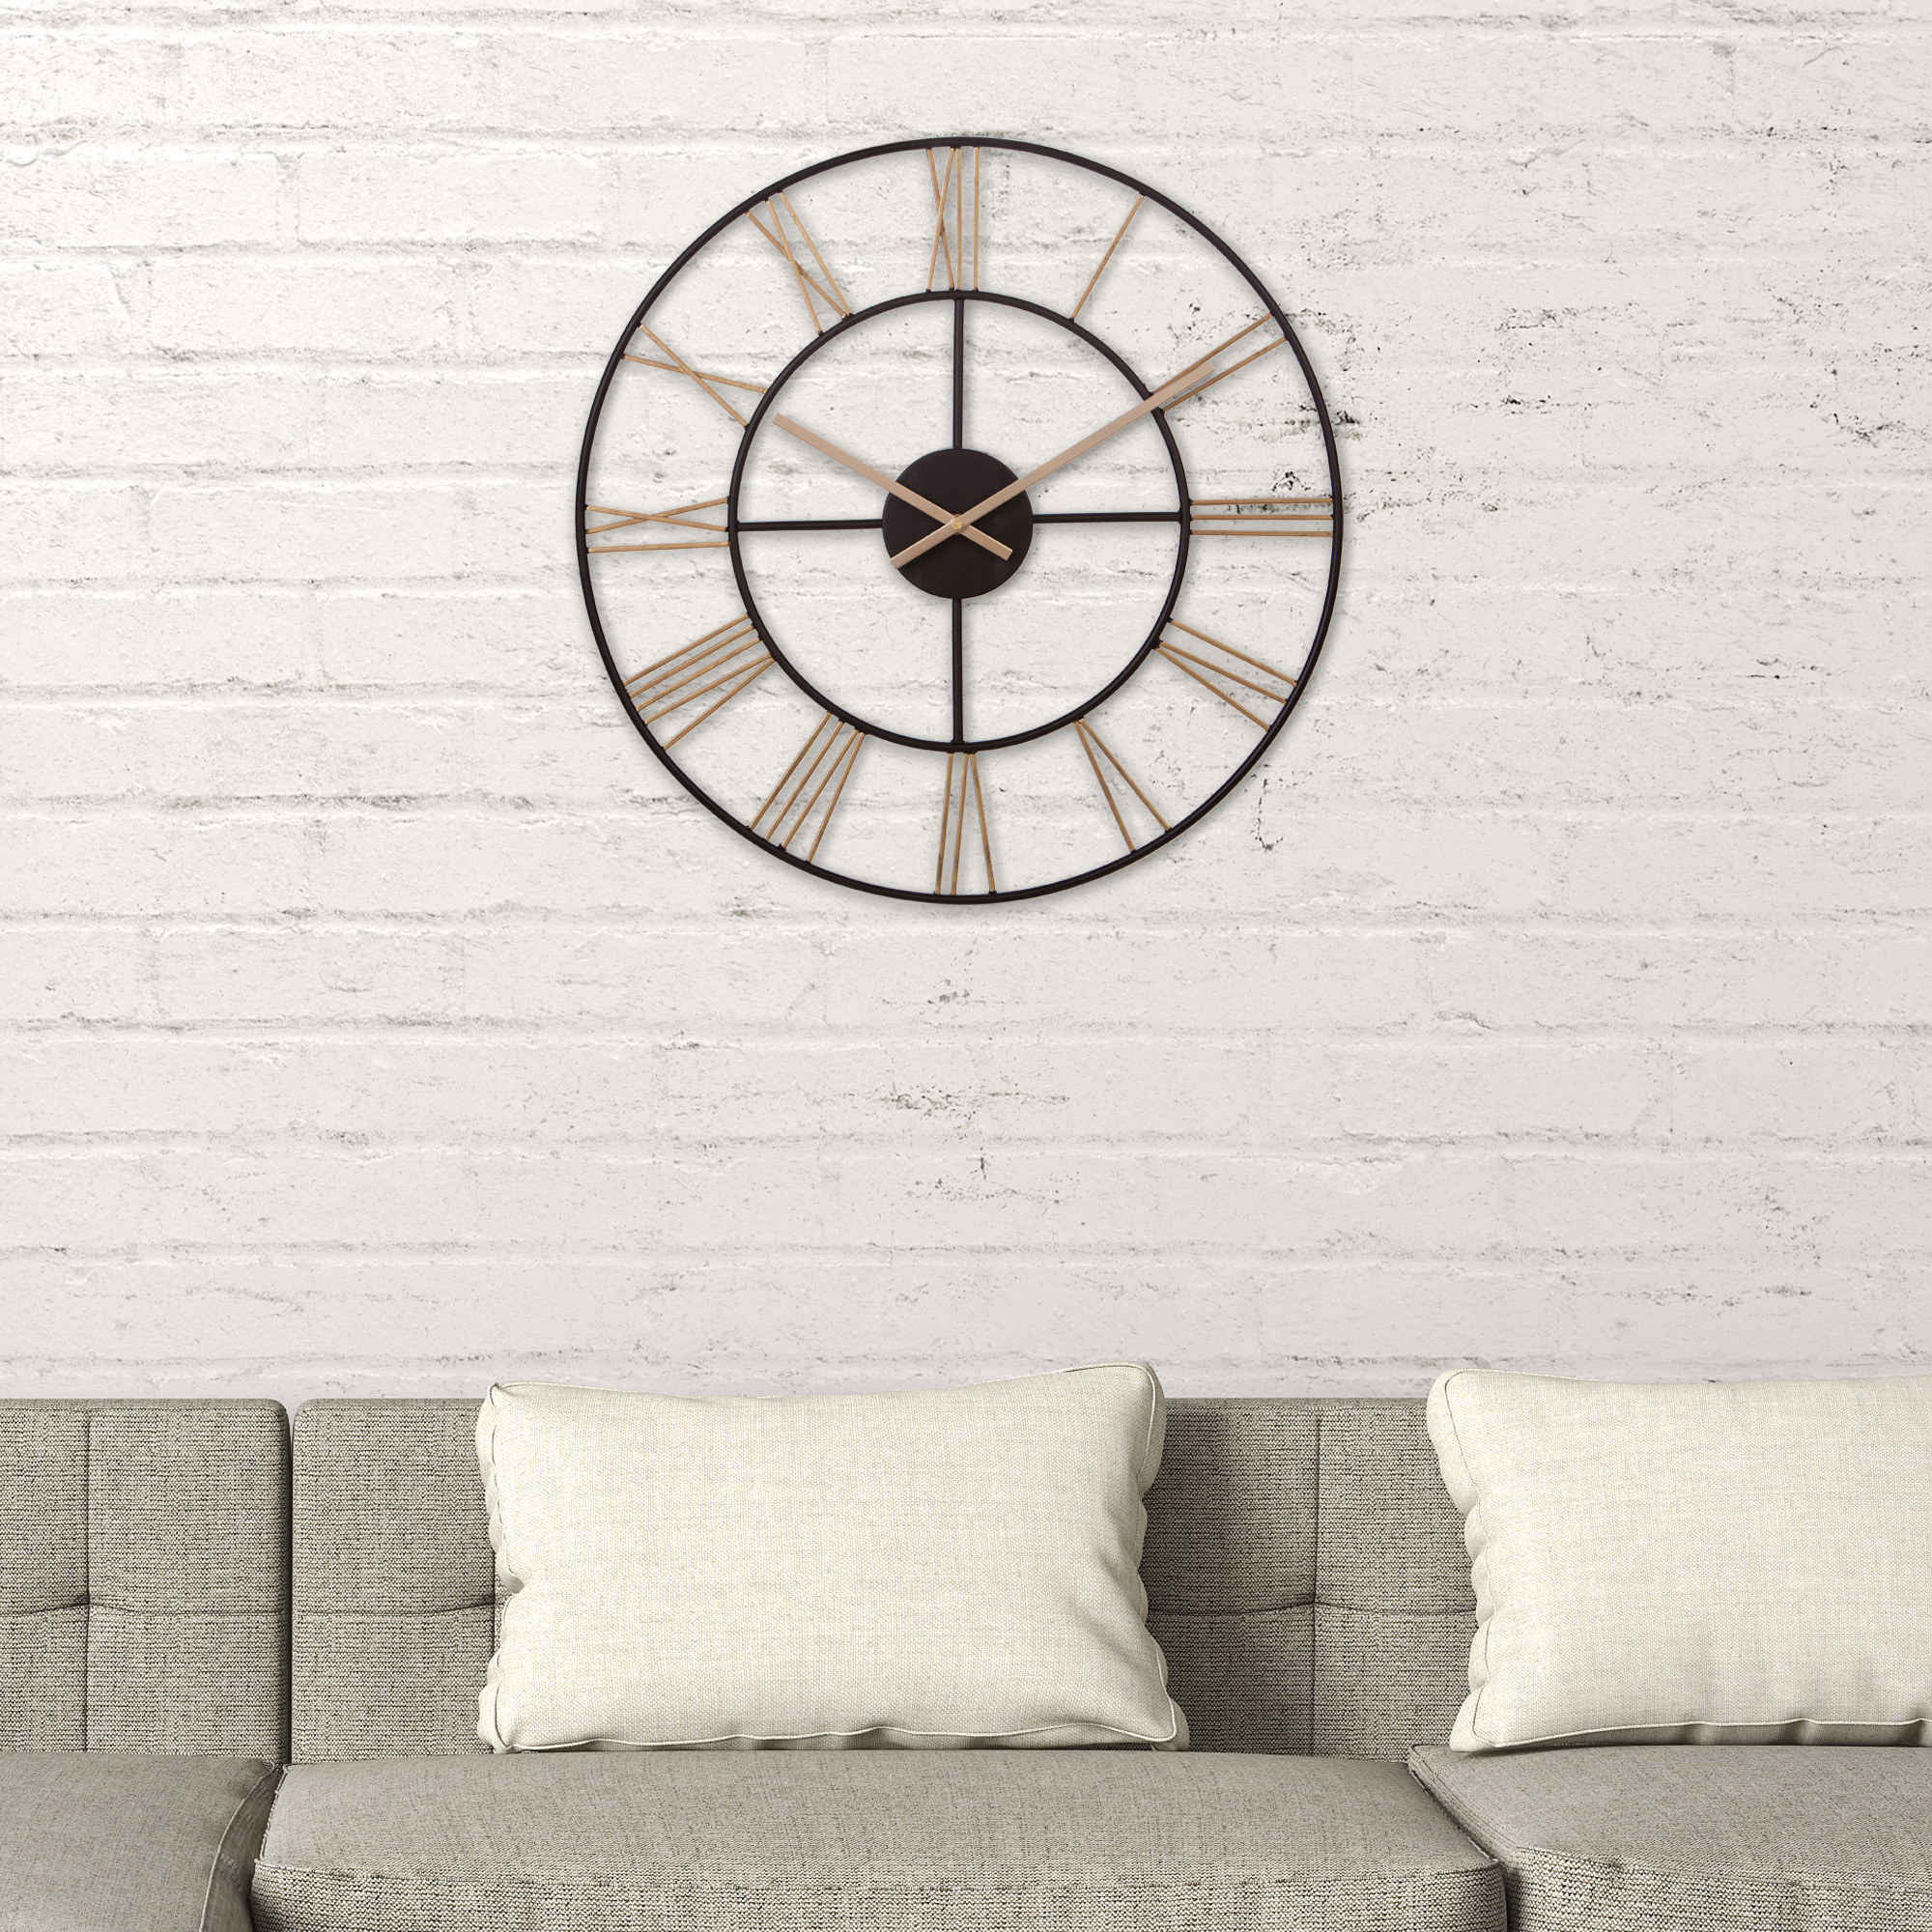 The clock above a couch